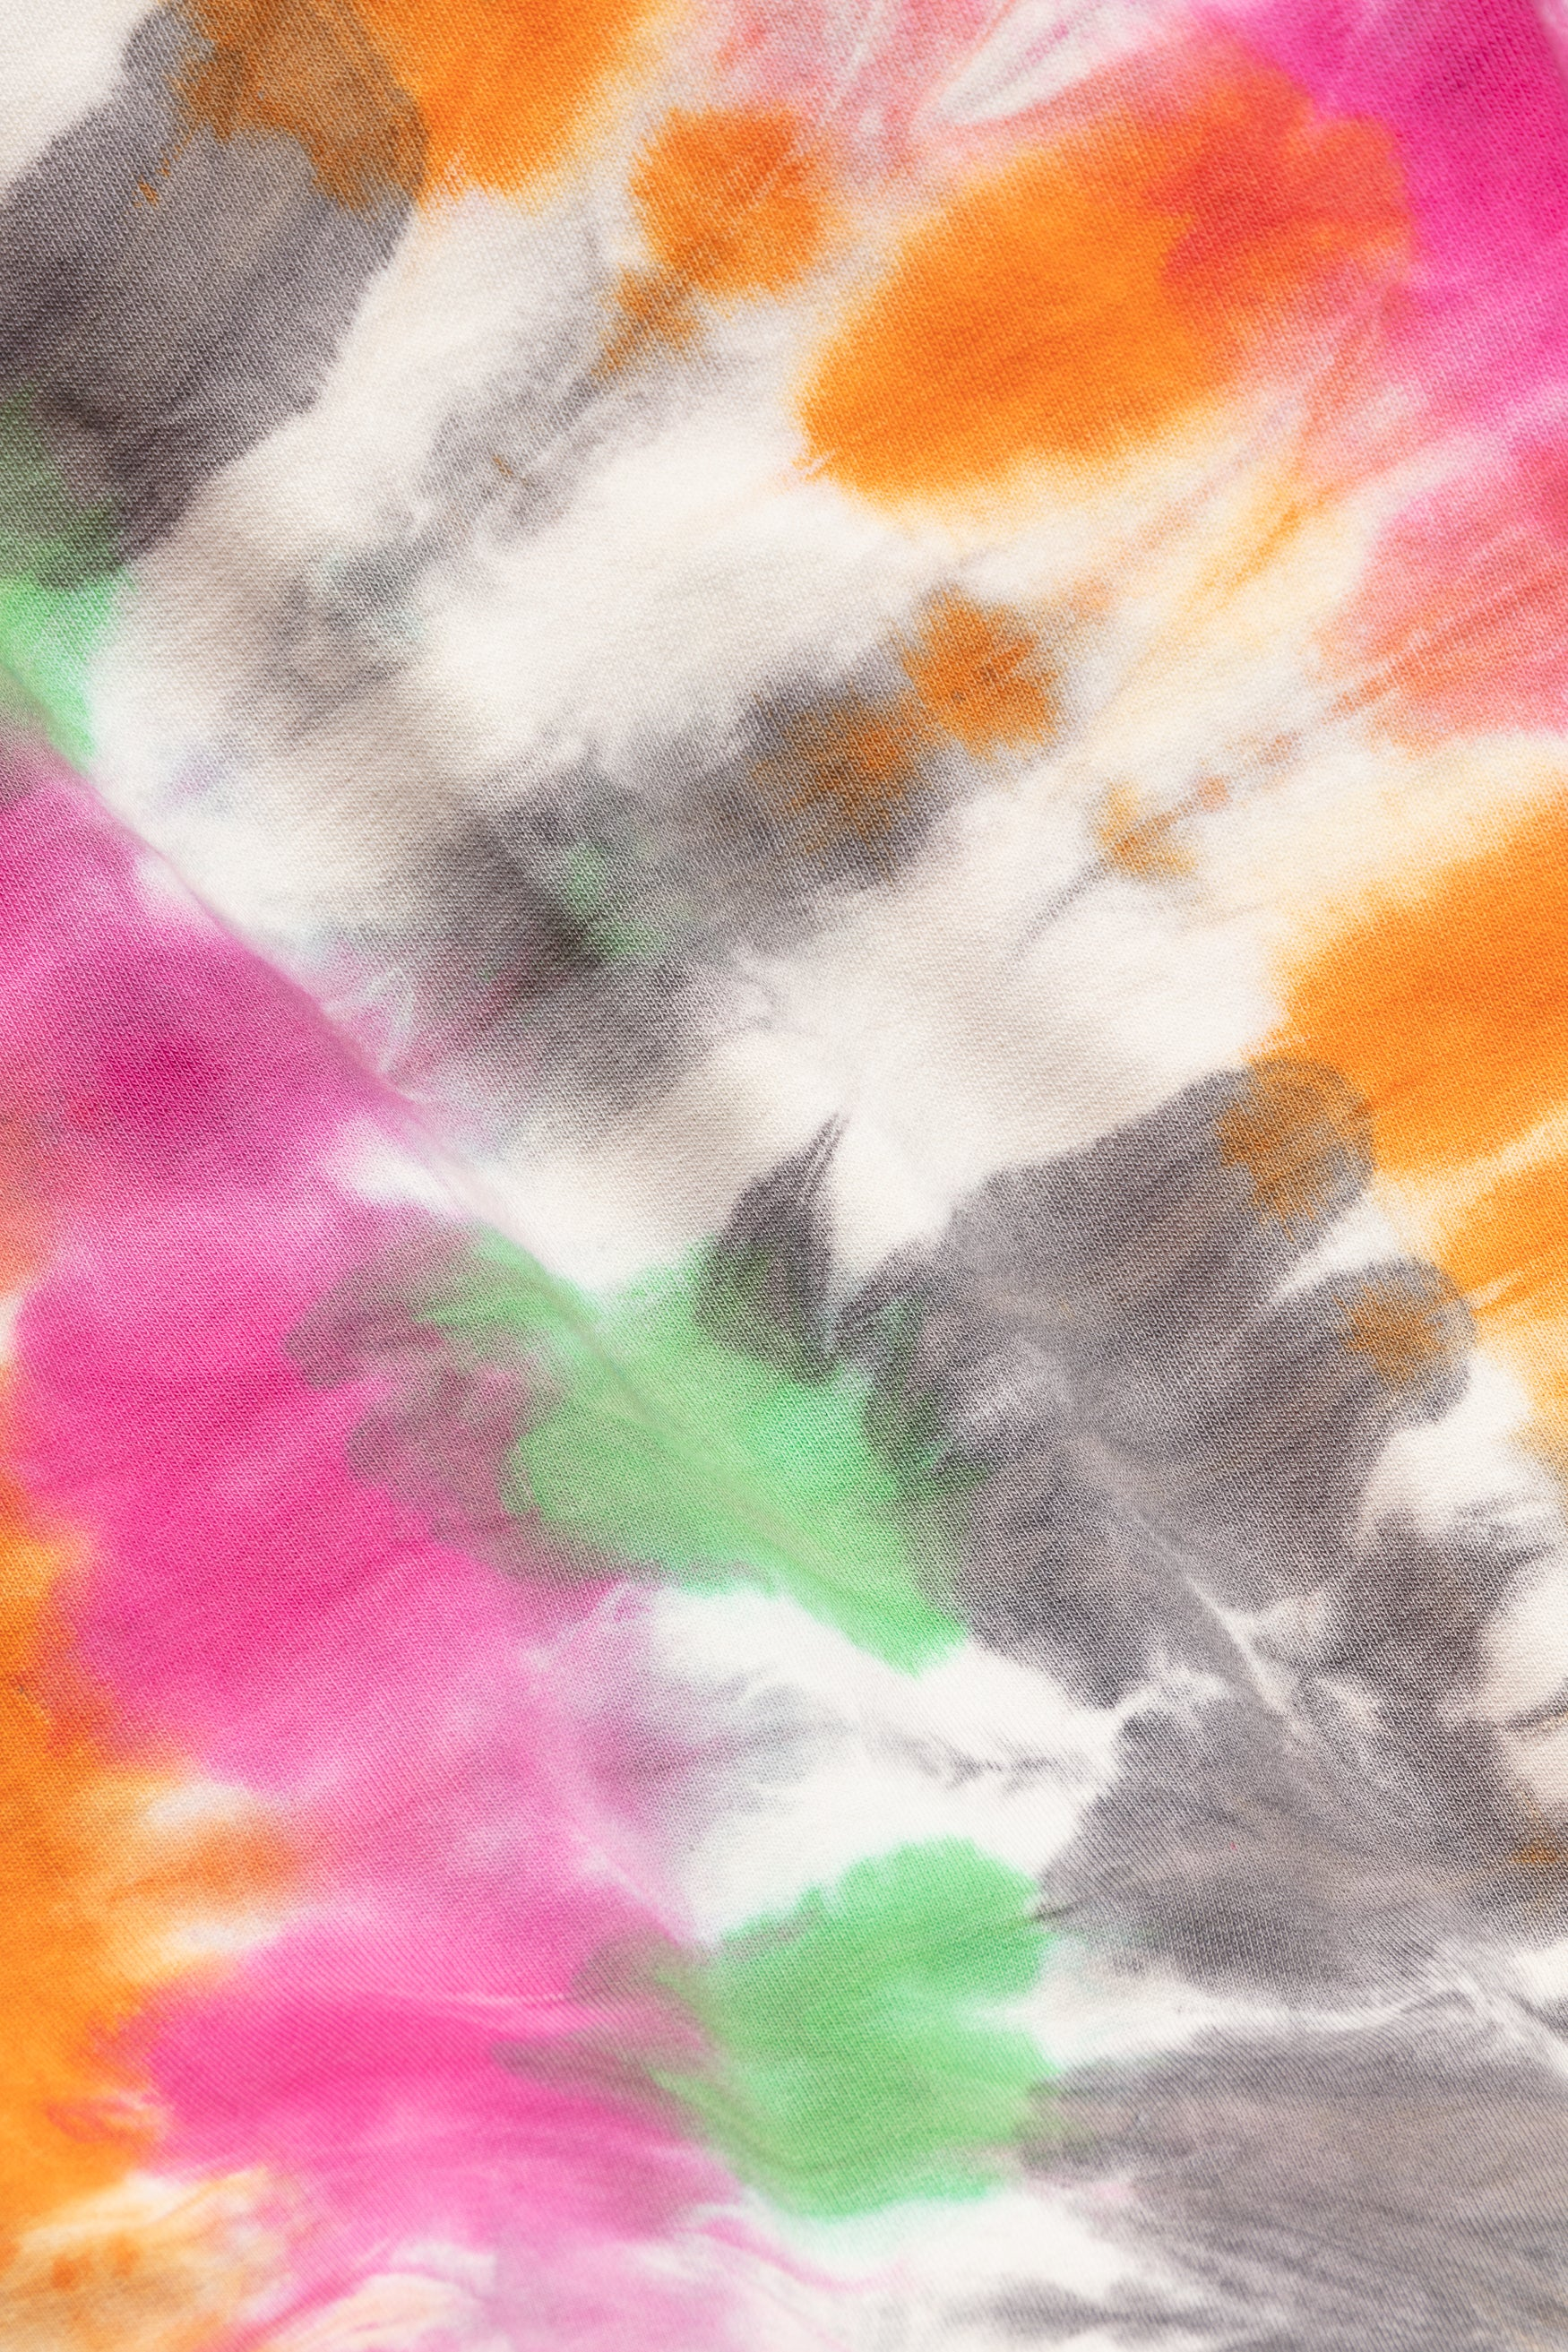 Load image into Gallery viewer, No Problemo Tie Dye Sweatshirt